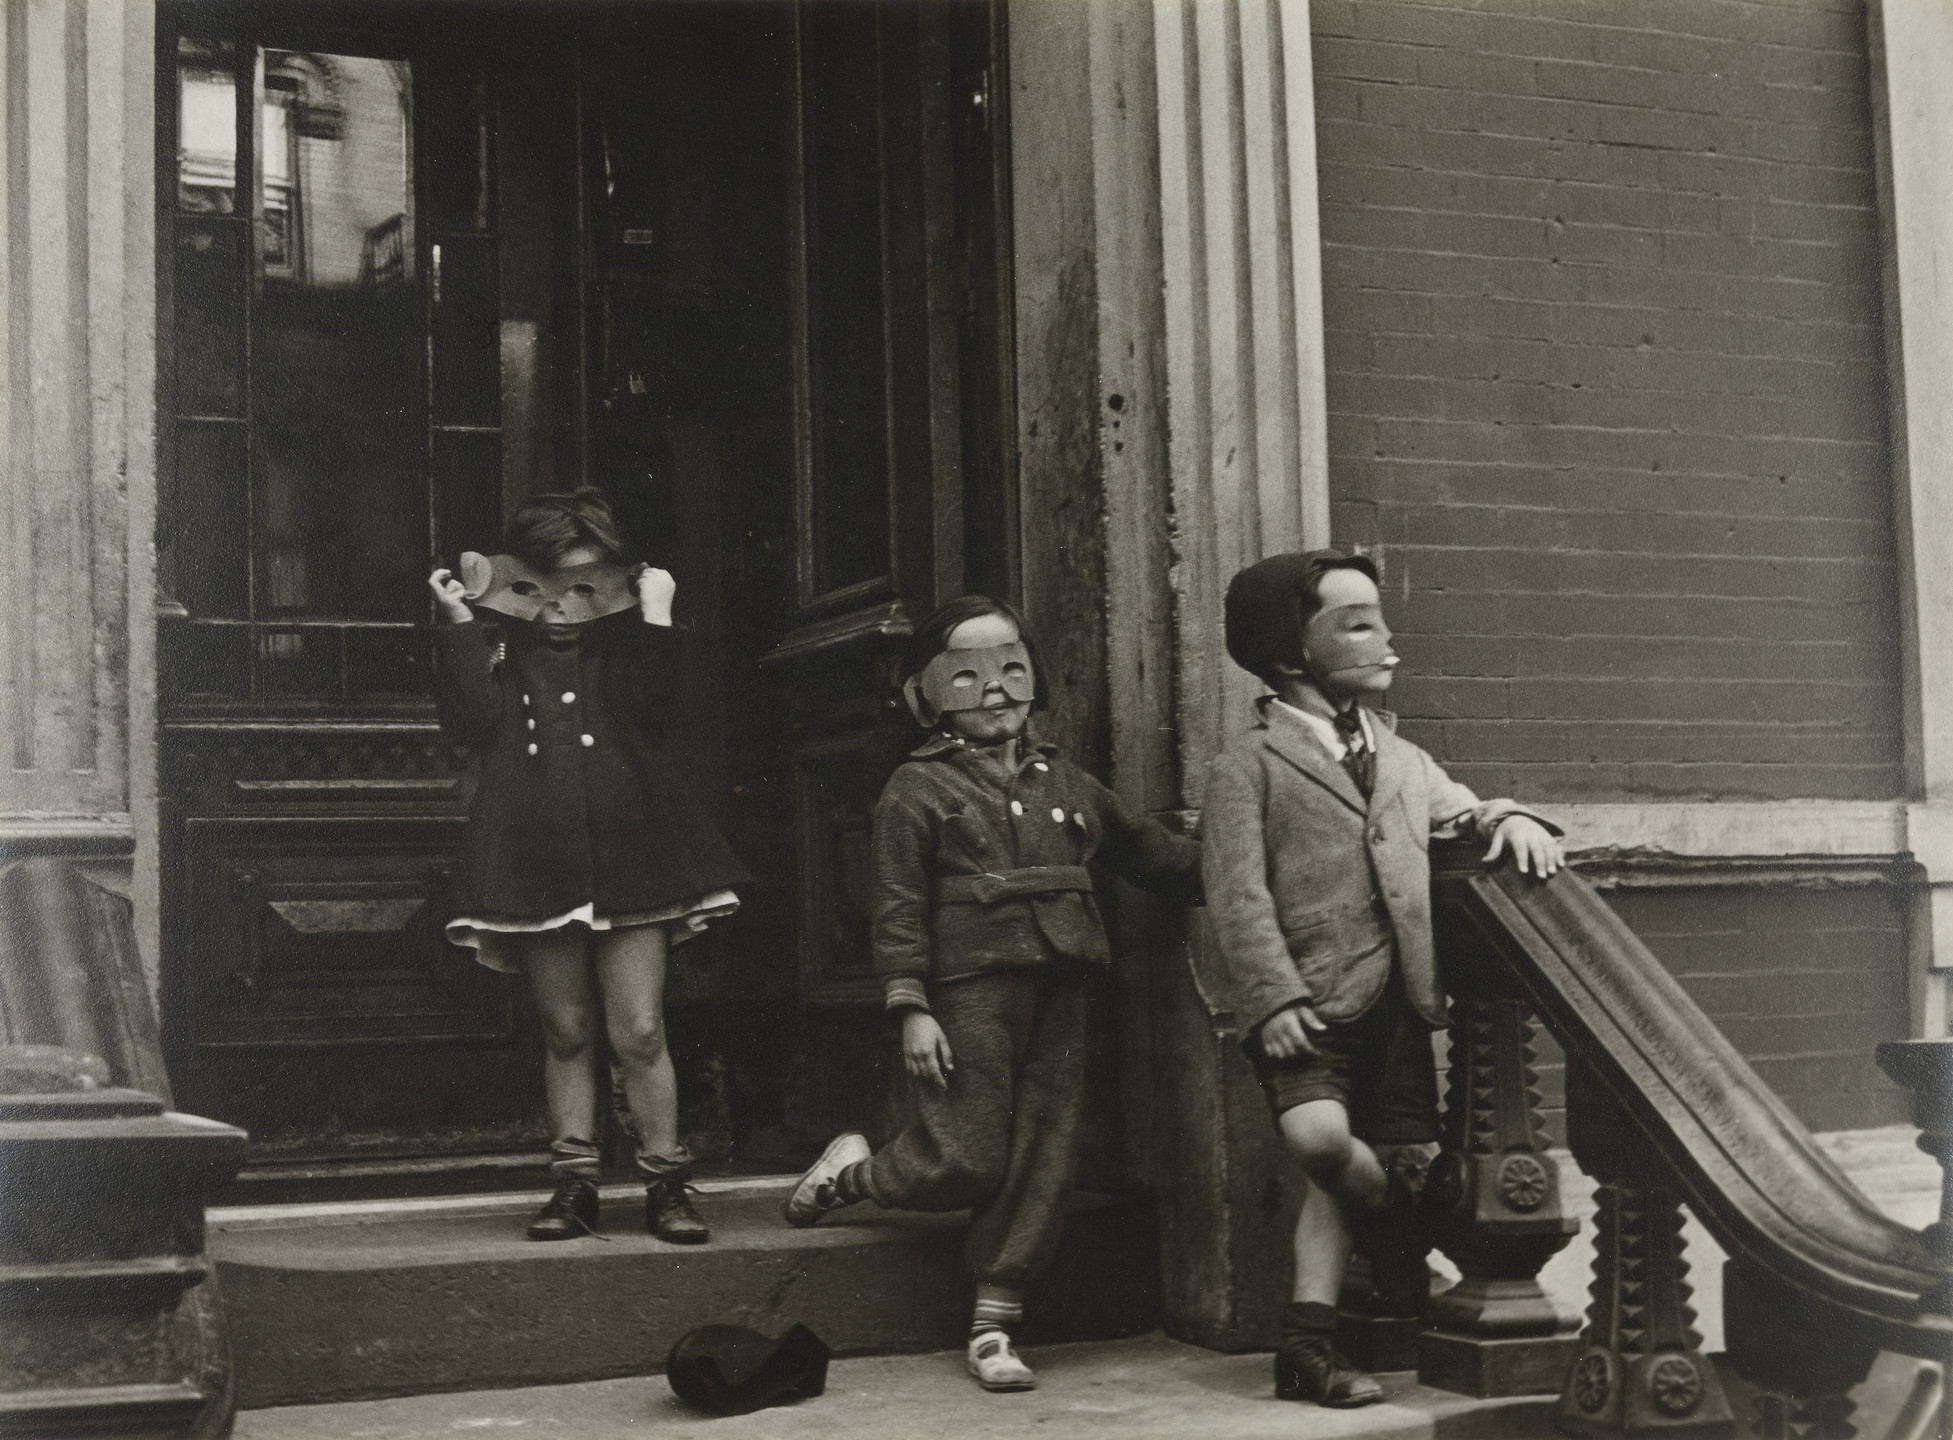 Helen Levitt. New York. 1940